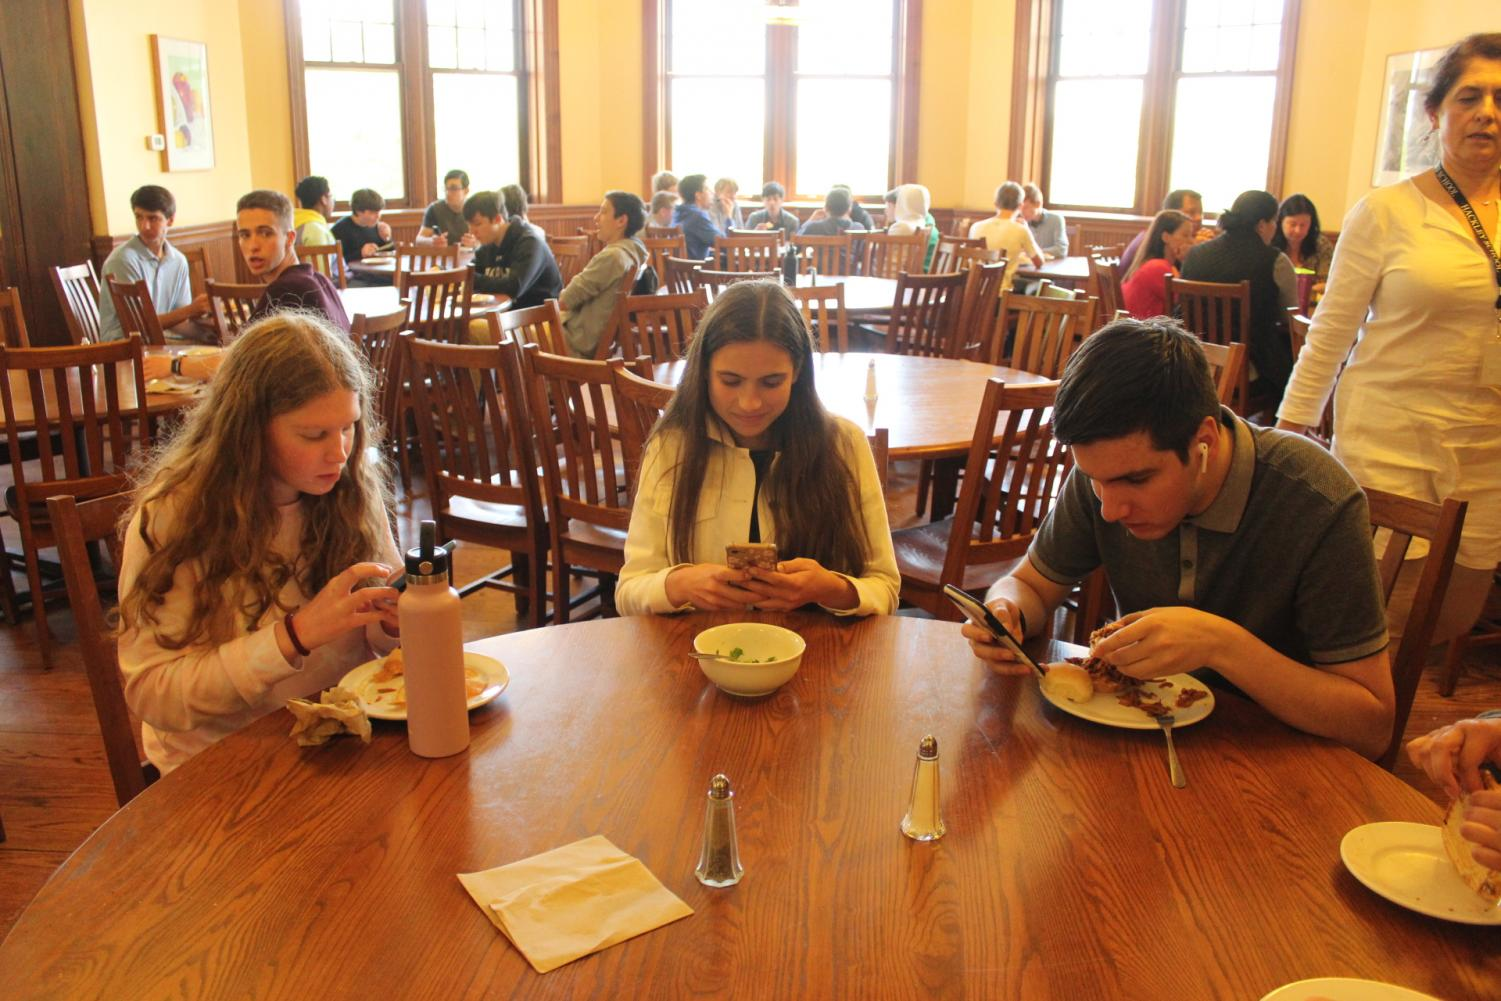 Students glued to their technology during lunch demonstrate the necessity for a day without technology. In recent years, the role of devices has become more prominent both in and out of the classroom.